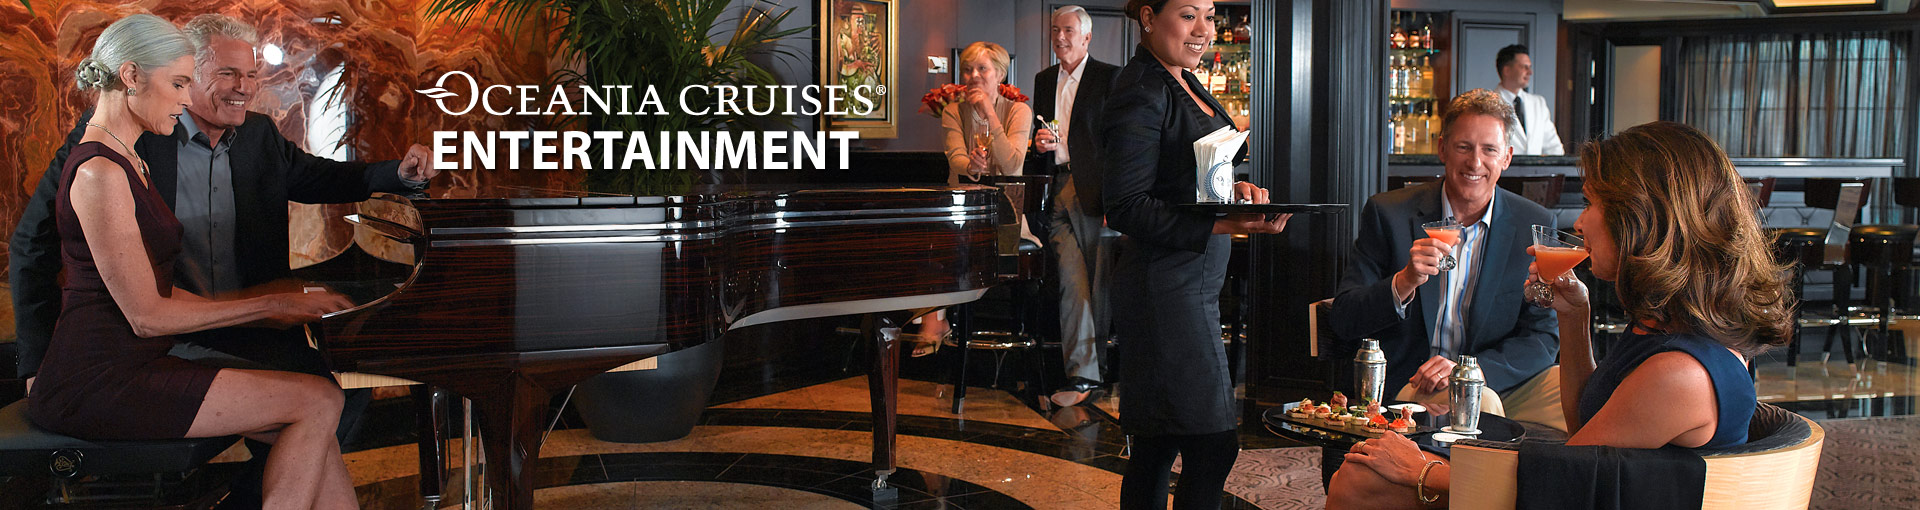 Oceania Cruises Entertainment